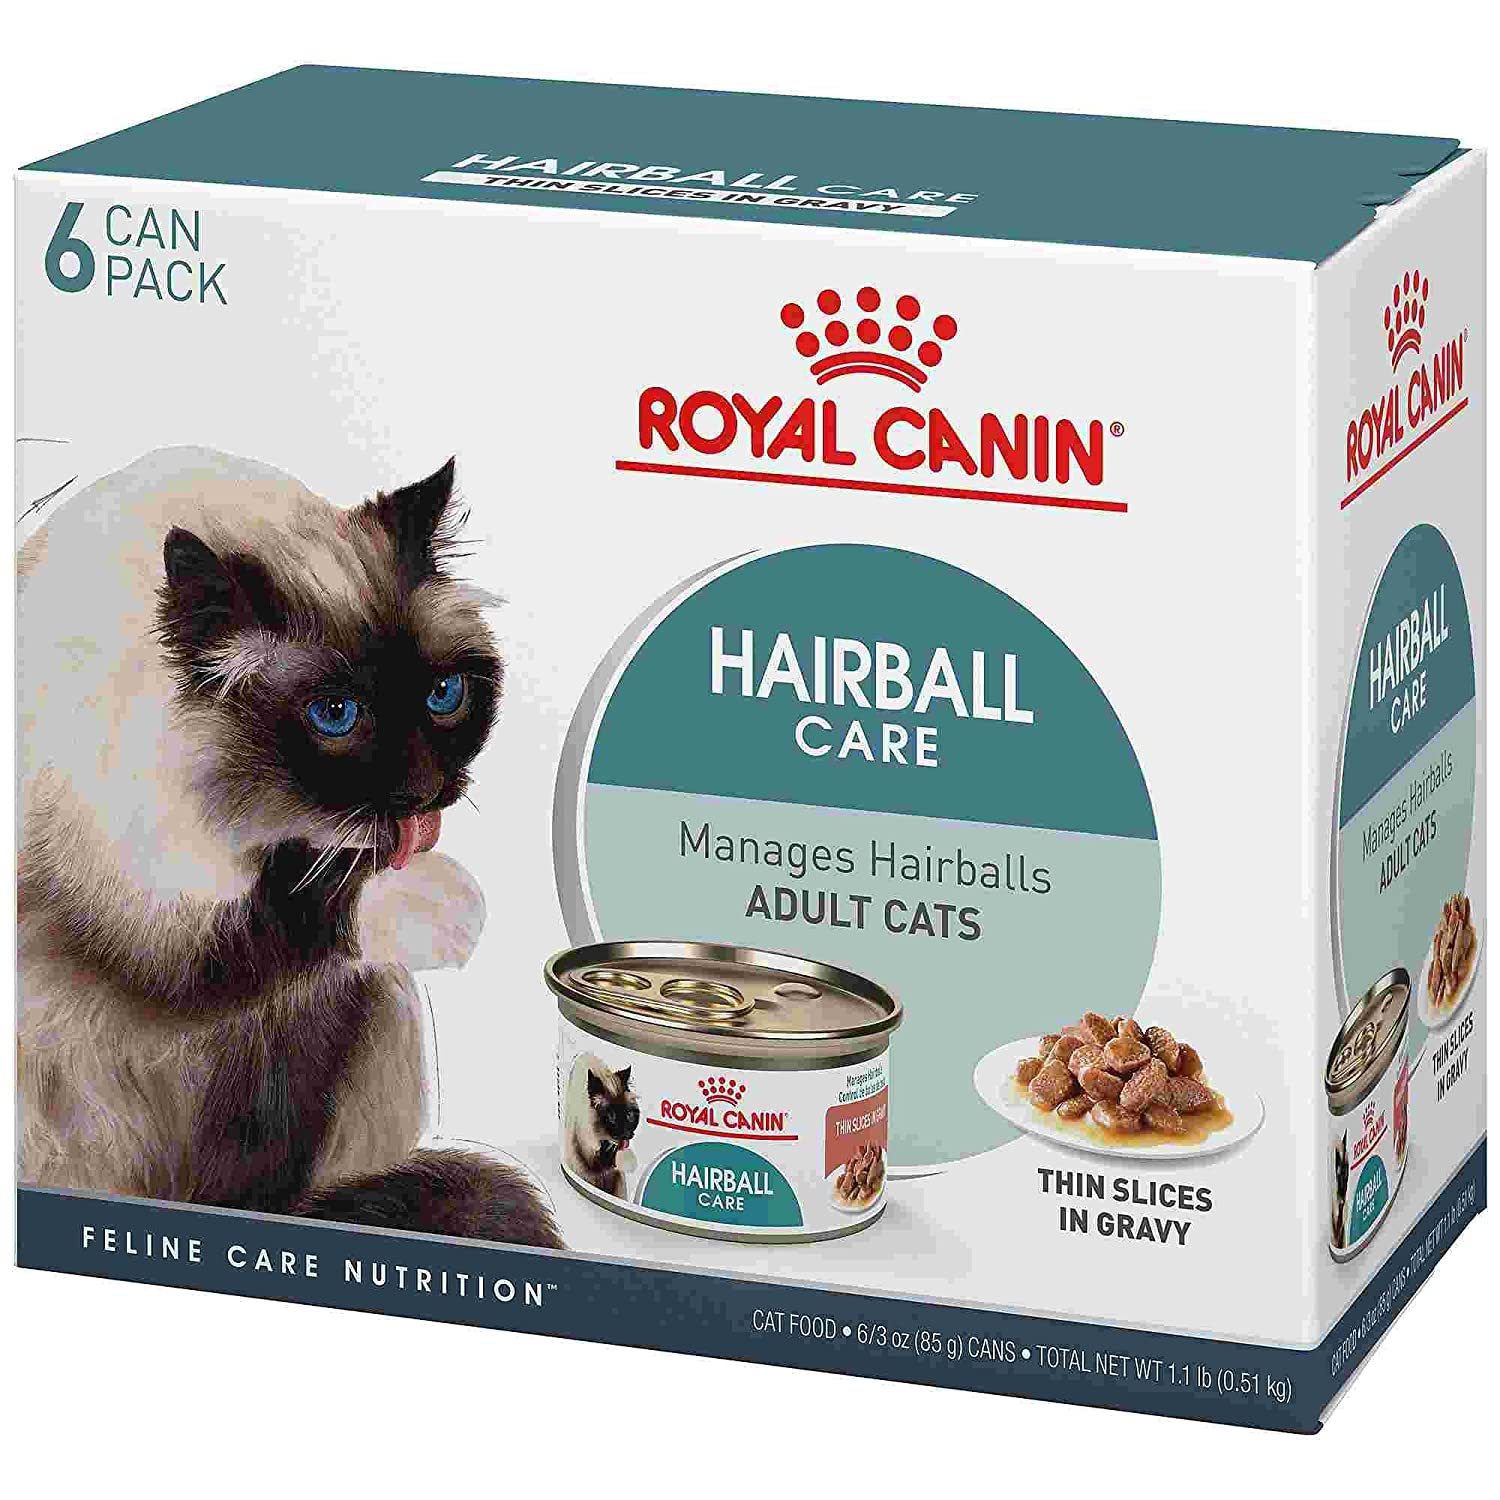 Amazon.com : Royal Canin Feline Care Nutrition Hairball Thin Slices in Gravy Wet Cat Food Multipack, 3 oz, Case of 6 : Pet Supplies